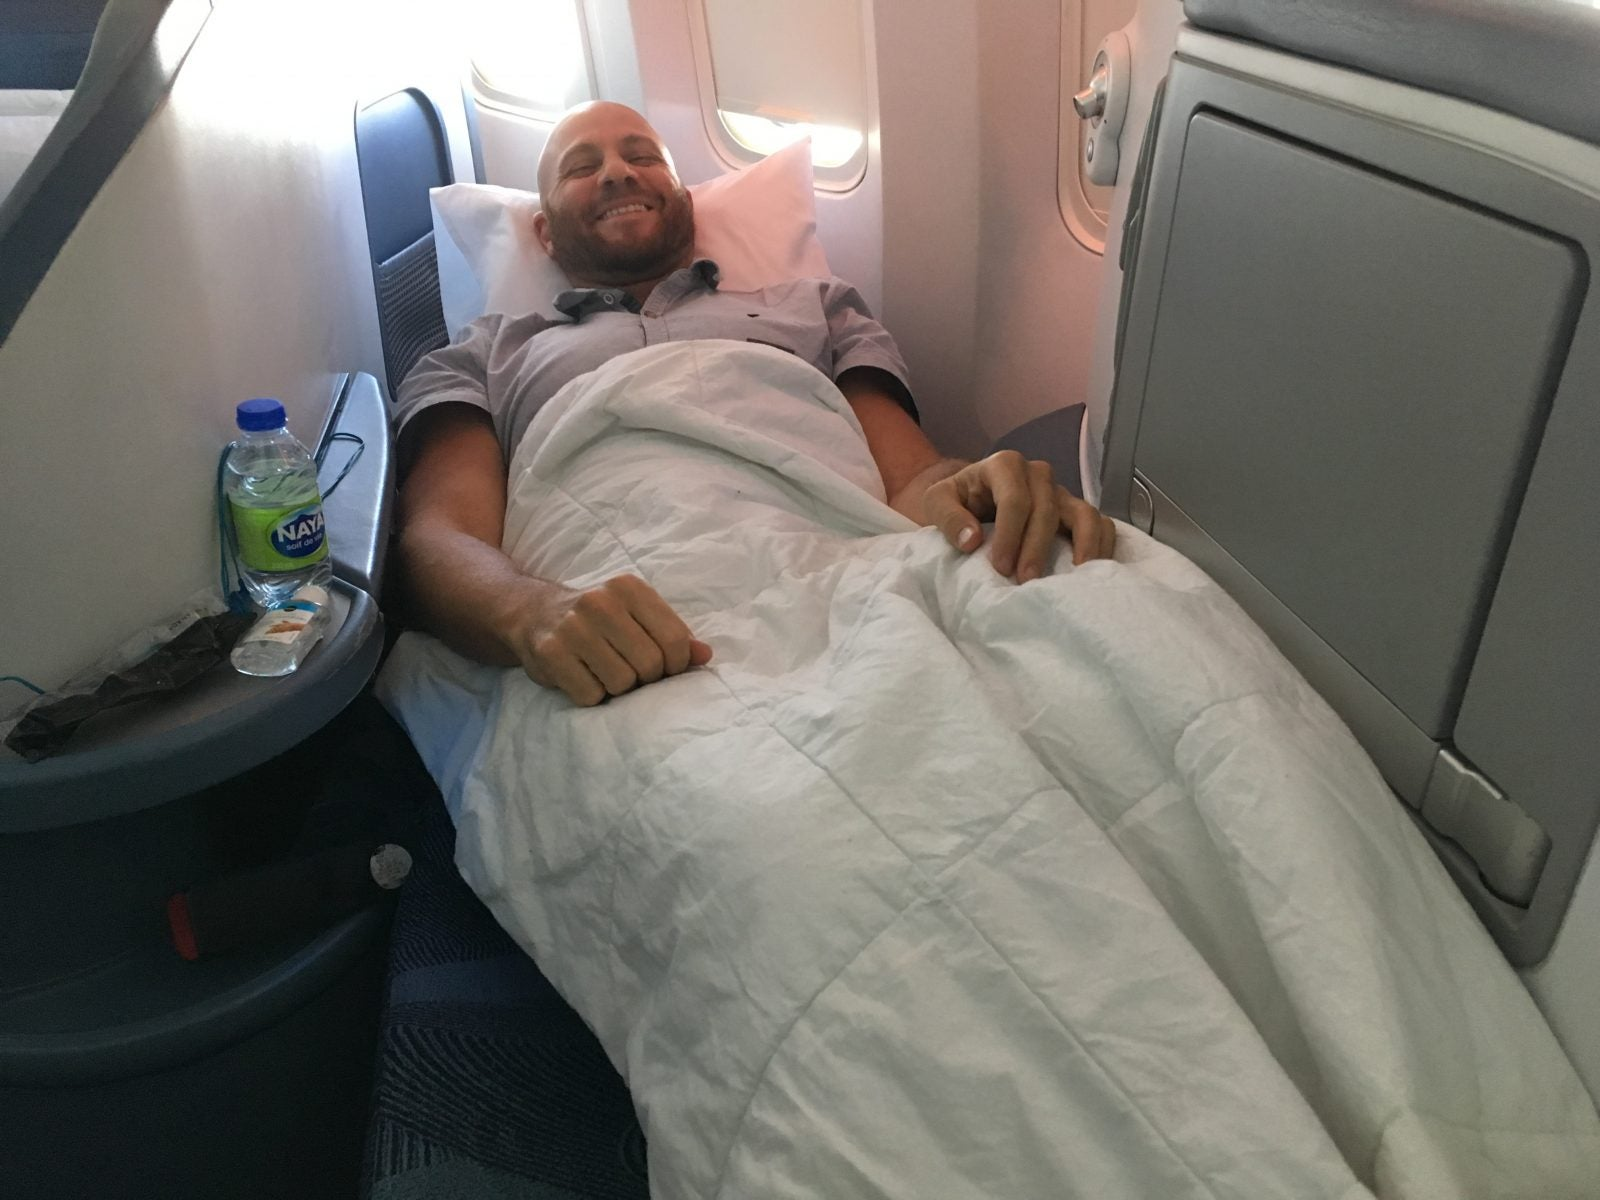 I Flew in Business Class bed to Europe using Chase points from my Chase Sapphire Preferred credit card